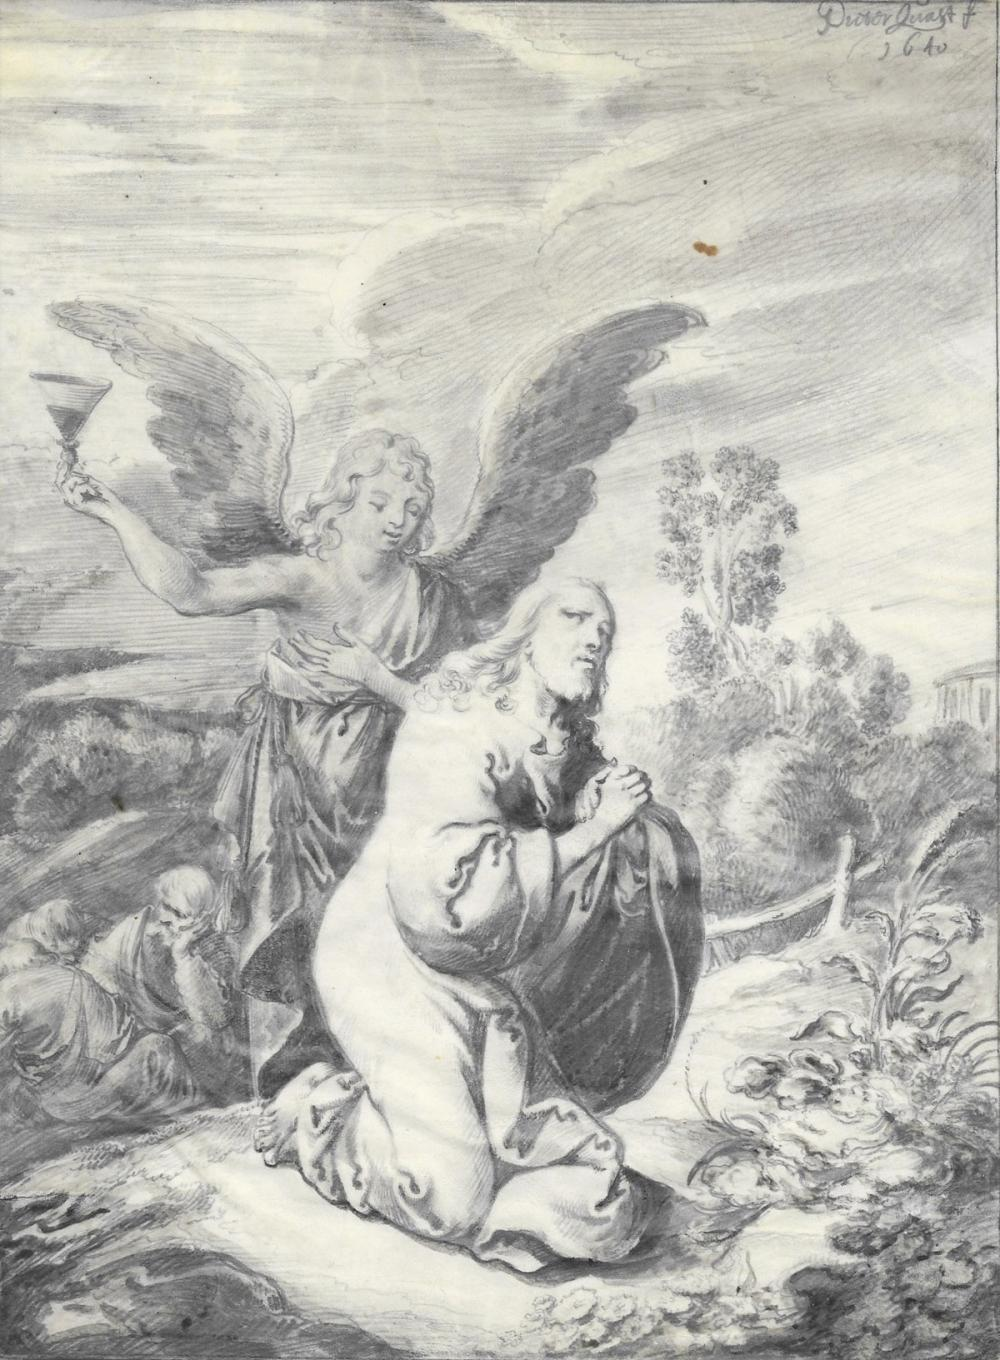 PIETER JANSZ QUAST (Amsterdam 1606-1647 Amsterdam) Group of 4 drawings from the Passion of Christ.